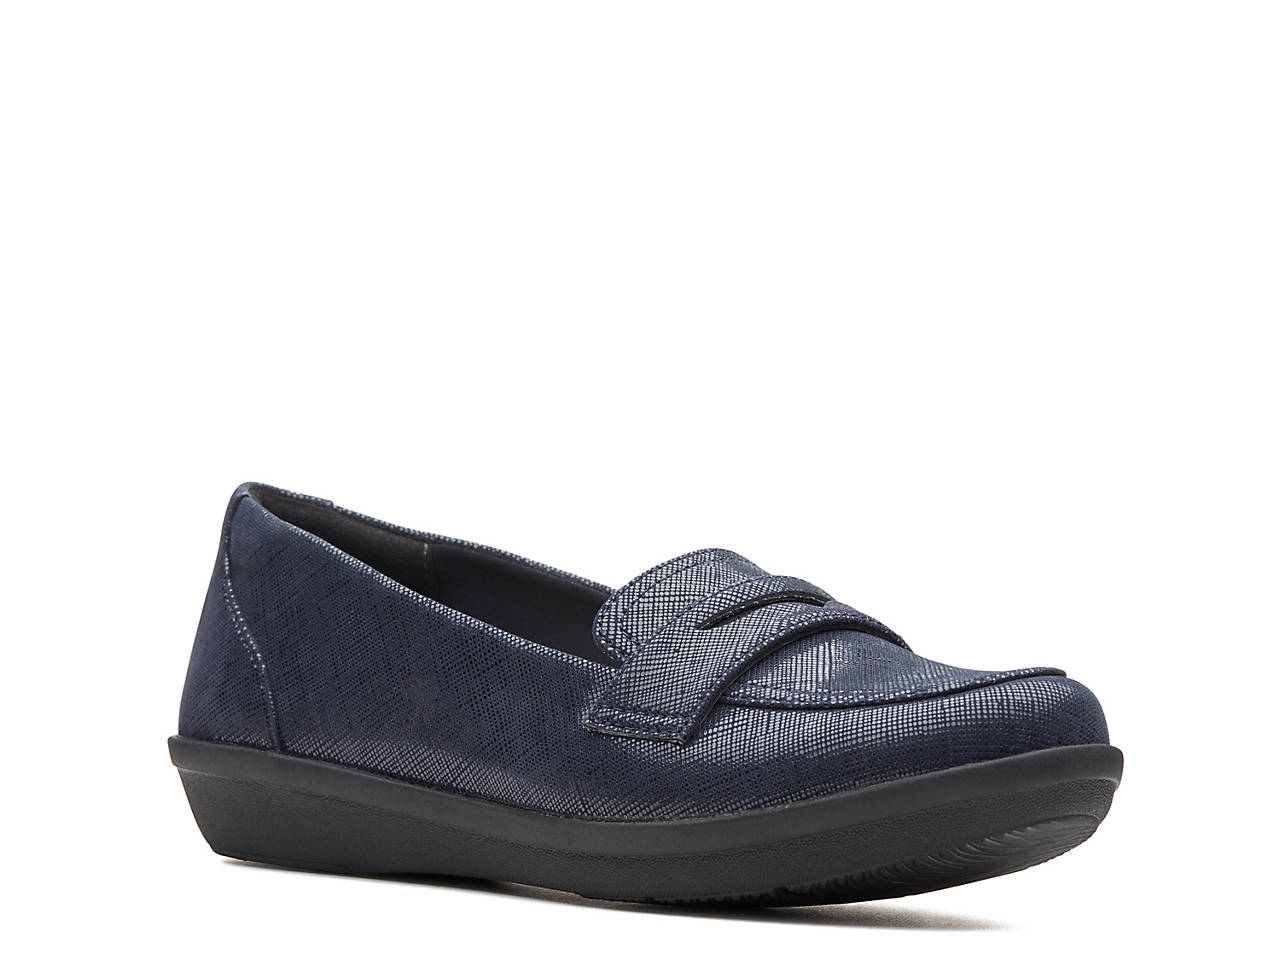 797bb063a3 Clarks Ayla Form Penny Loafer Women s Shoes